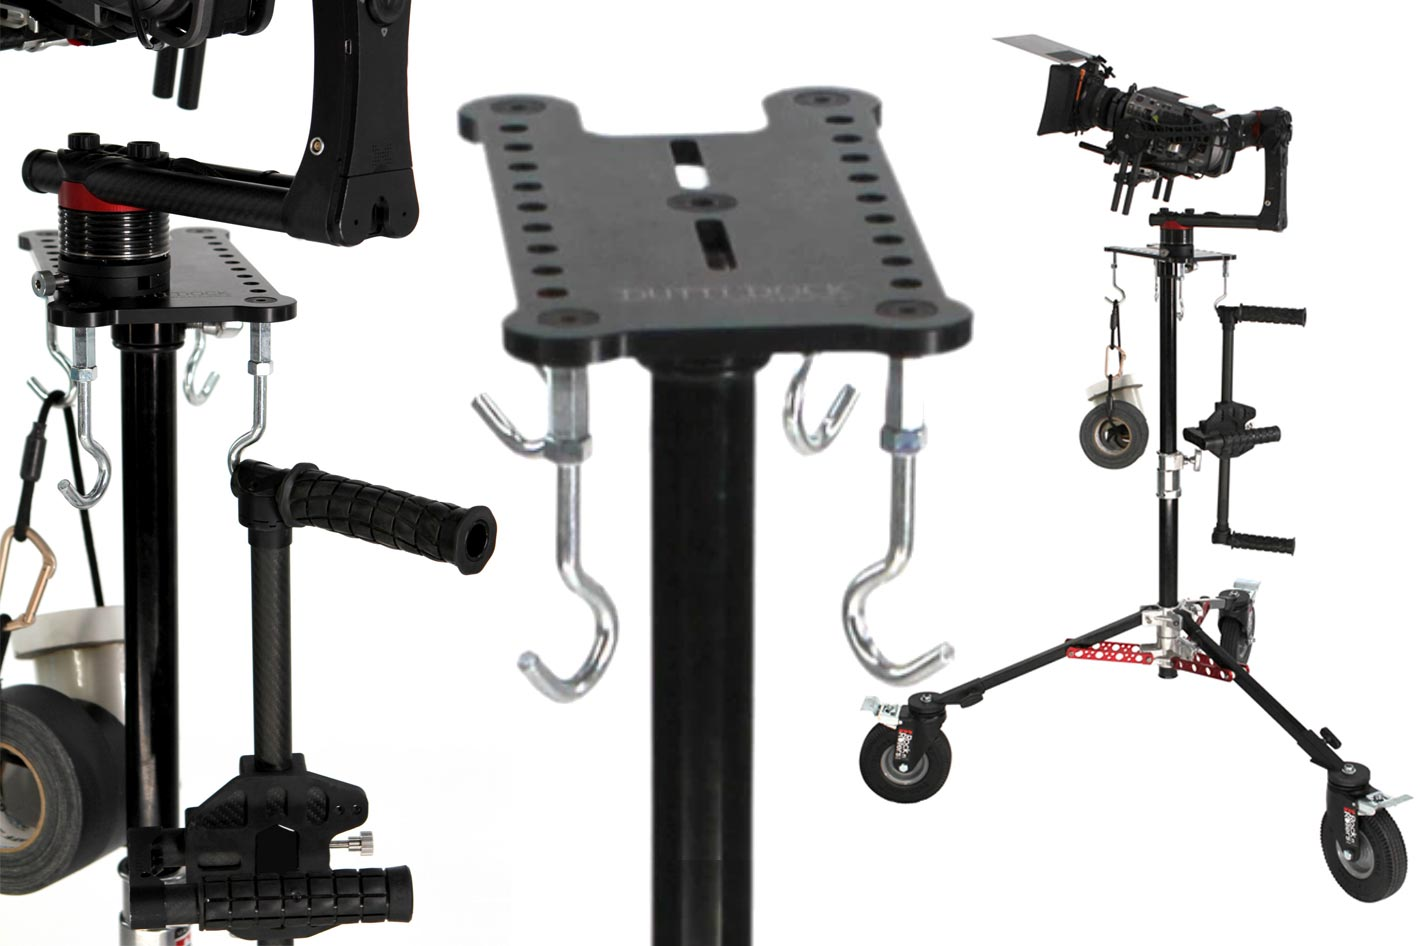 Keep your tools close by with the new Matthews Docking System